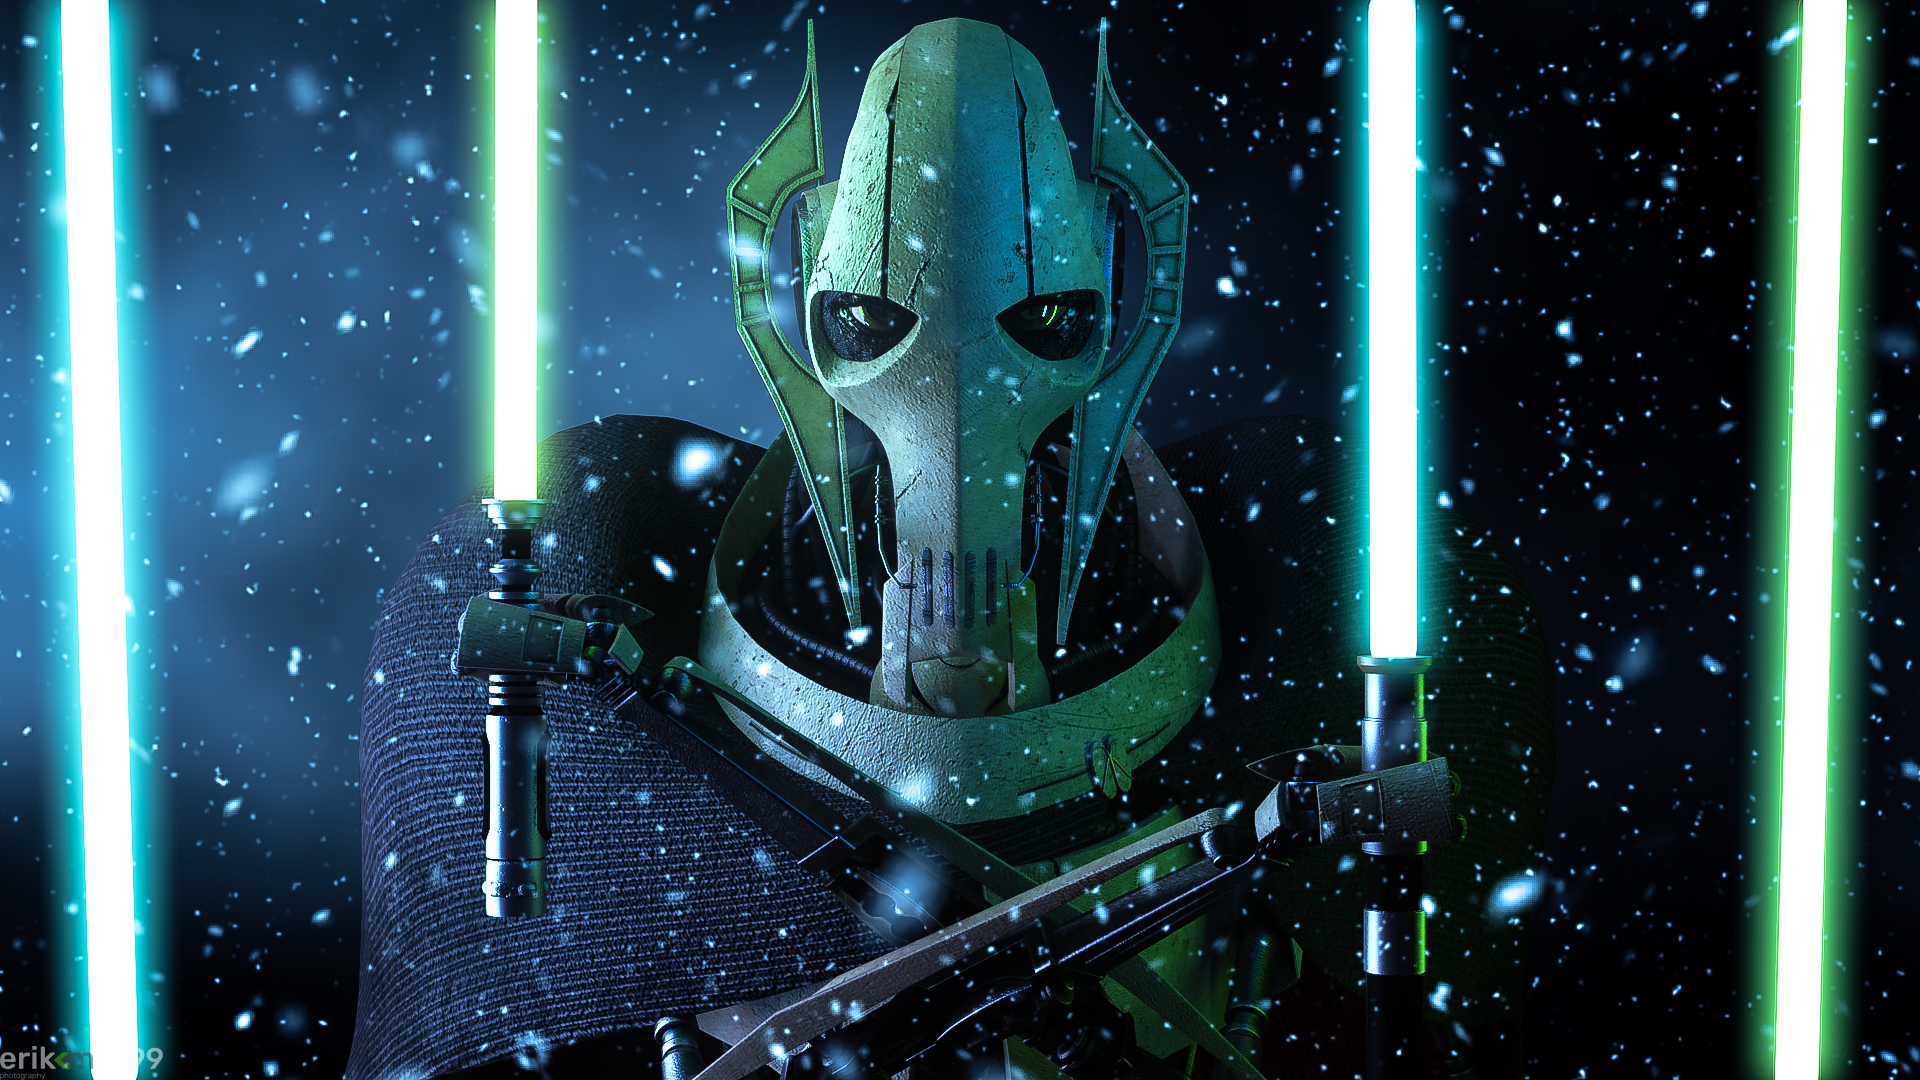 General Grievous Yellow Eyes Close Up Blue Lightsaber